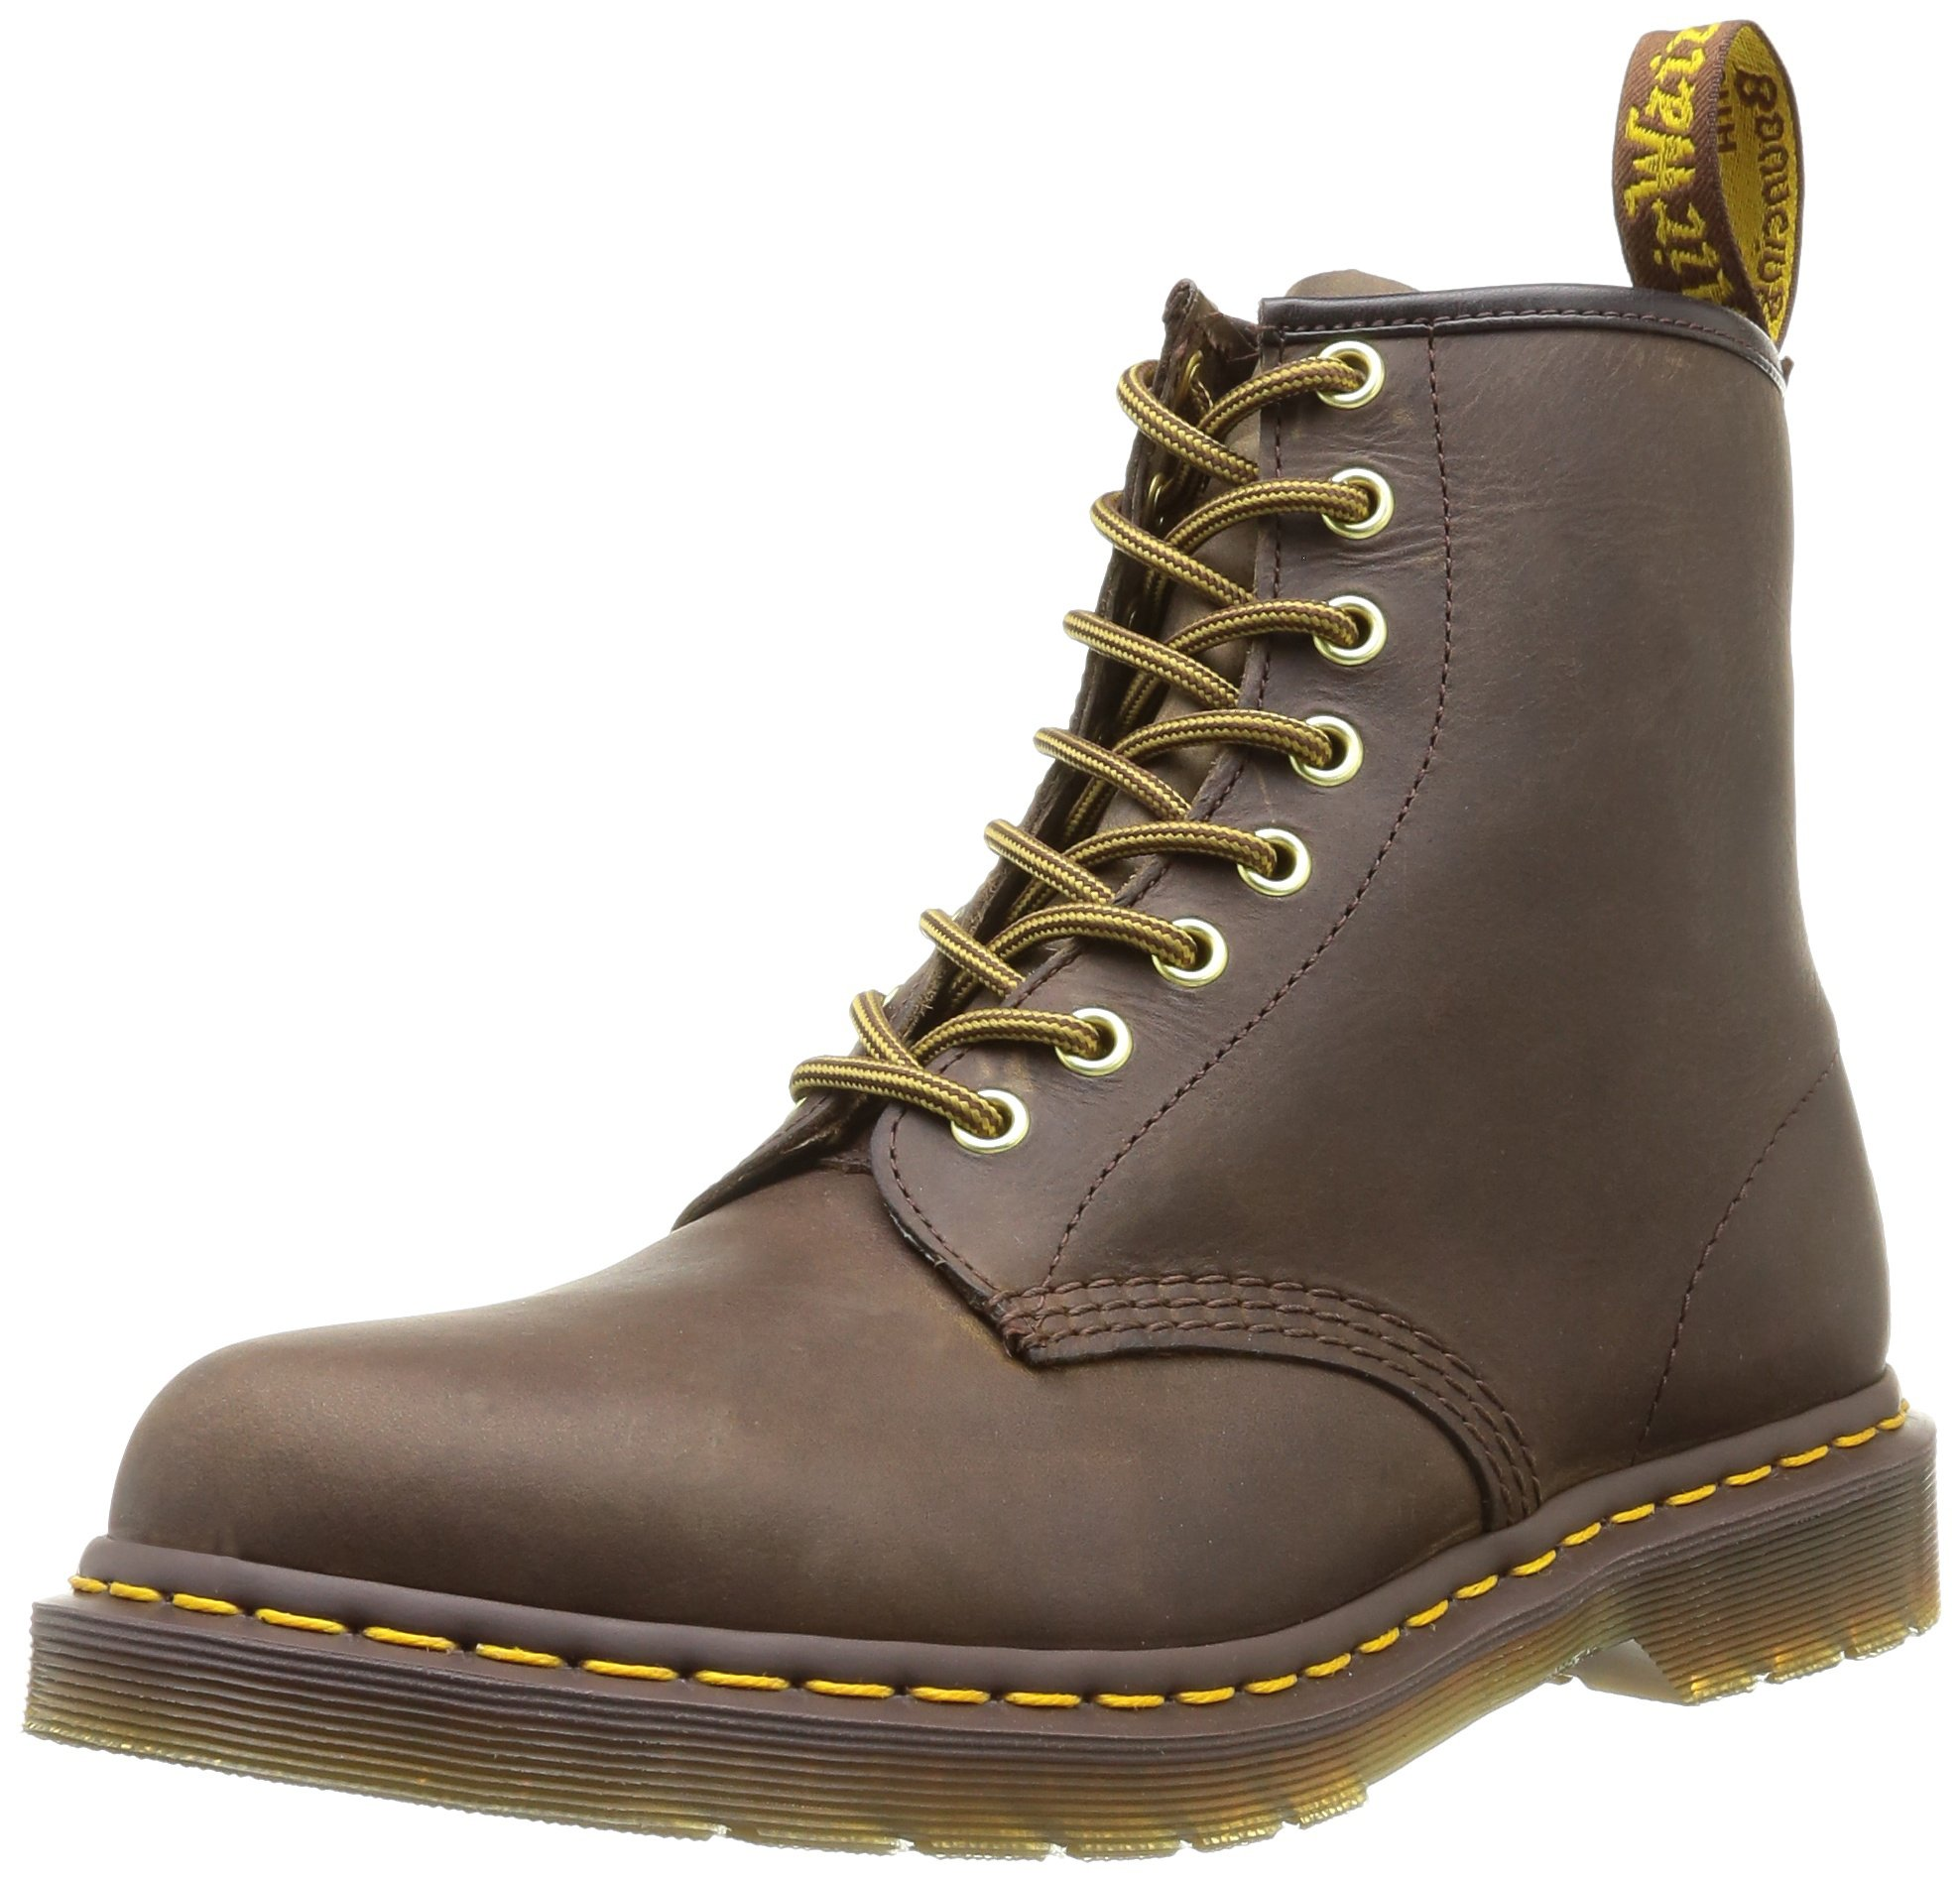 Dr. Martens Men's 1460 Re-Invented 8 Eye Lace Up Boot,Aztec Crazyhorse Leather,10 UK (11 M US Mens)